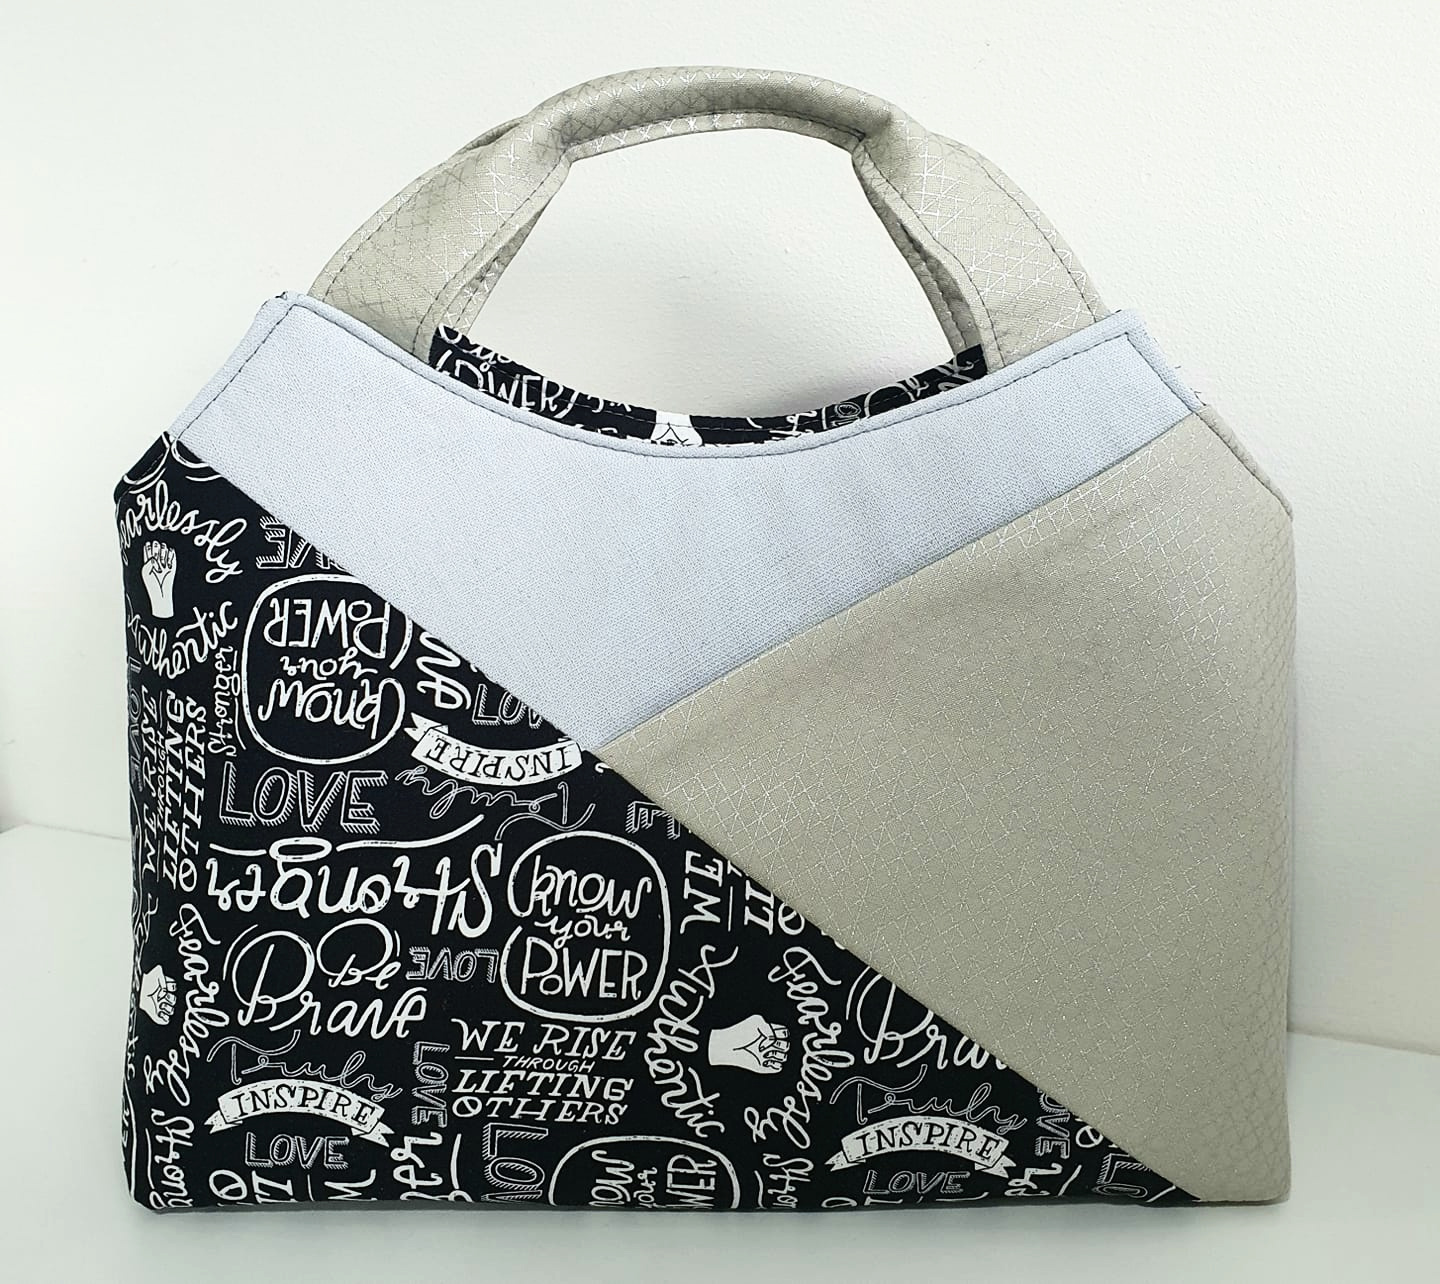 The Hope Handbag, designed by Sewing Patterns by Mrs H for The Bag of the Month Club